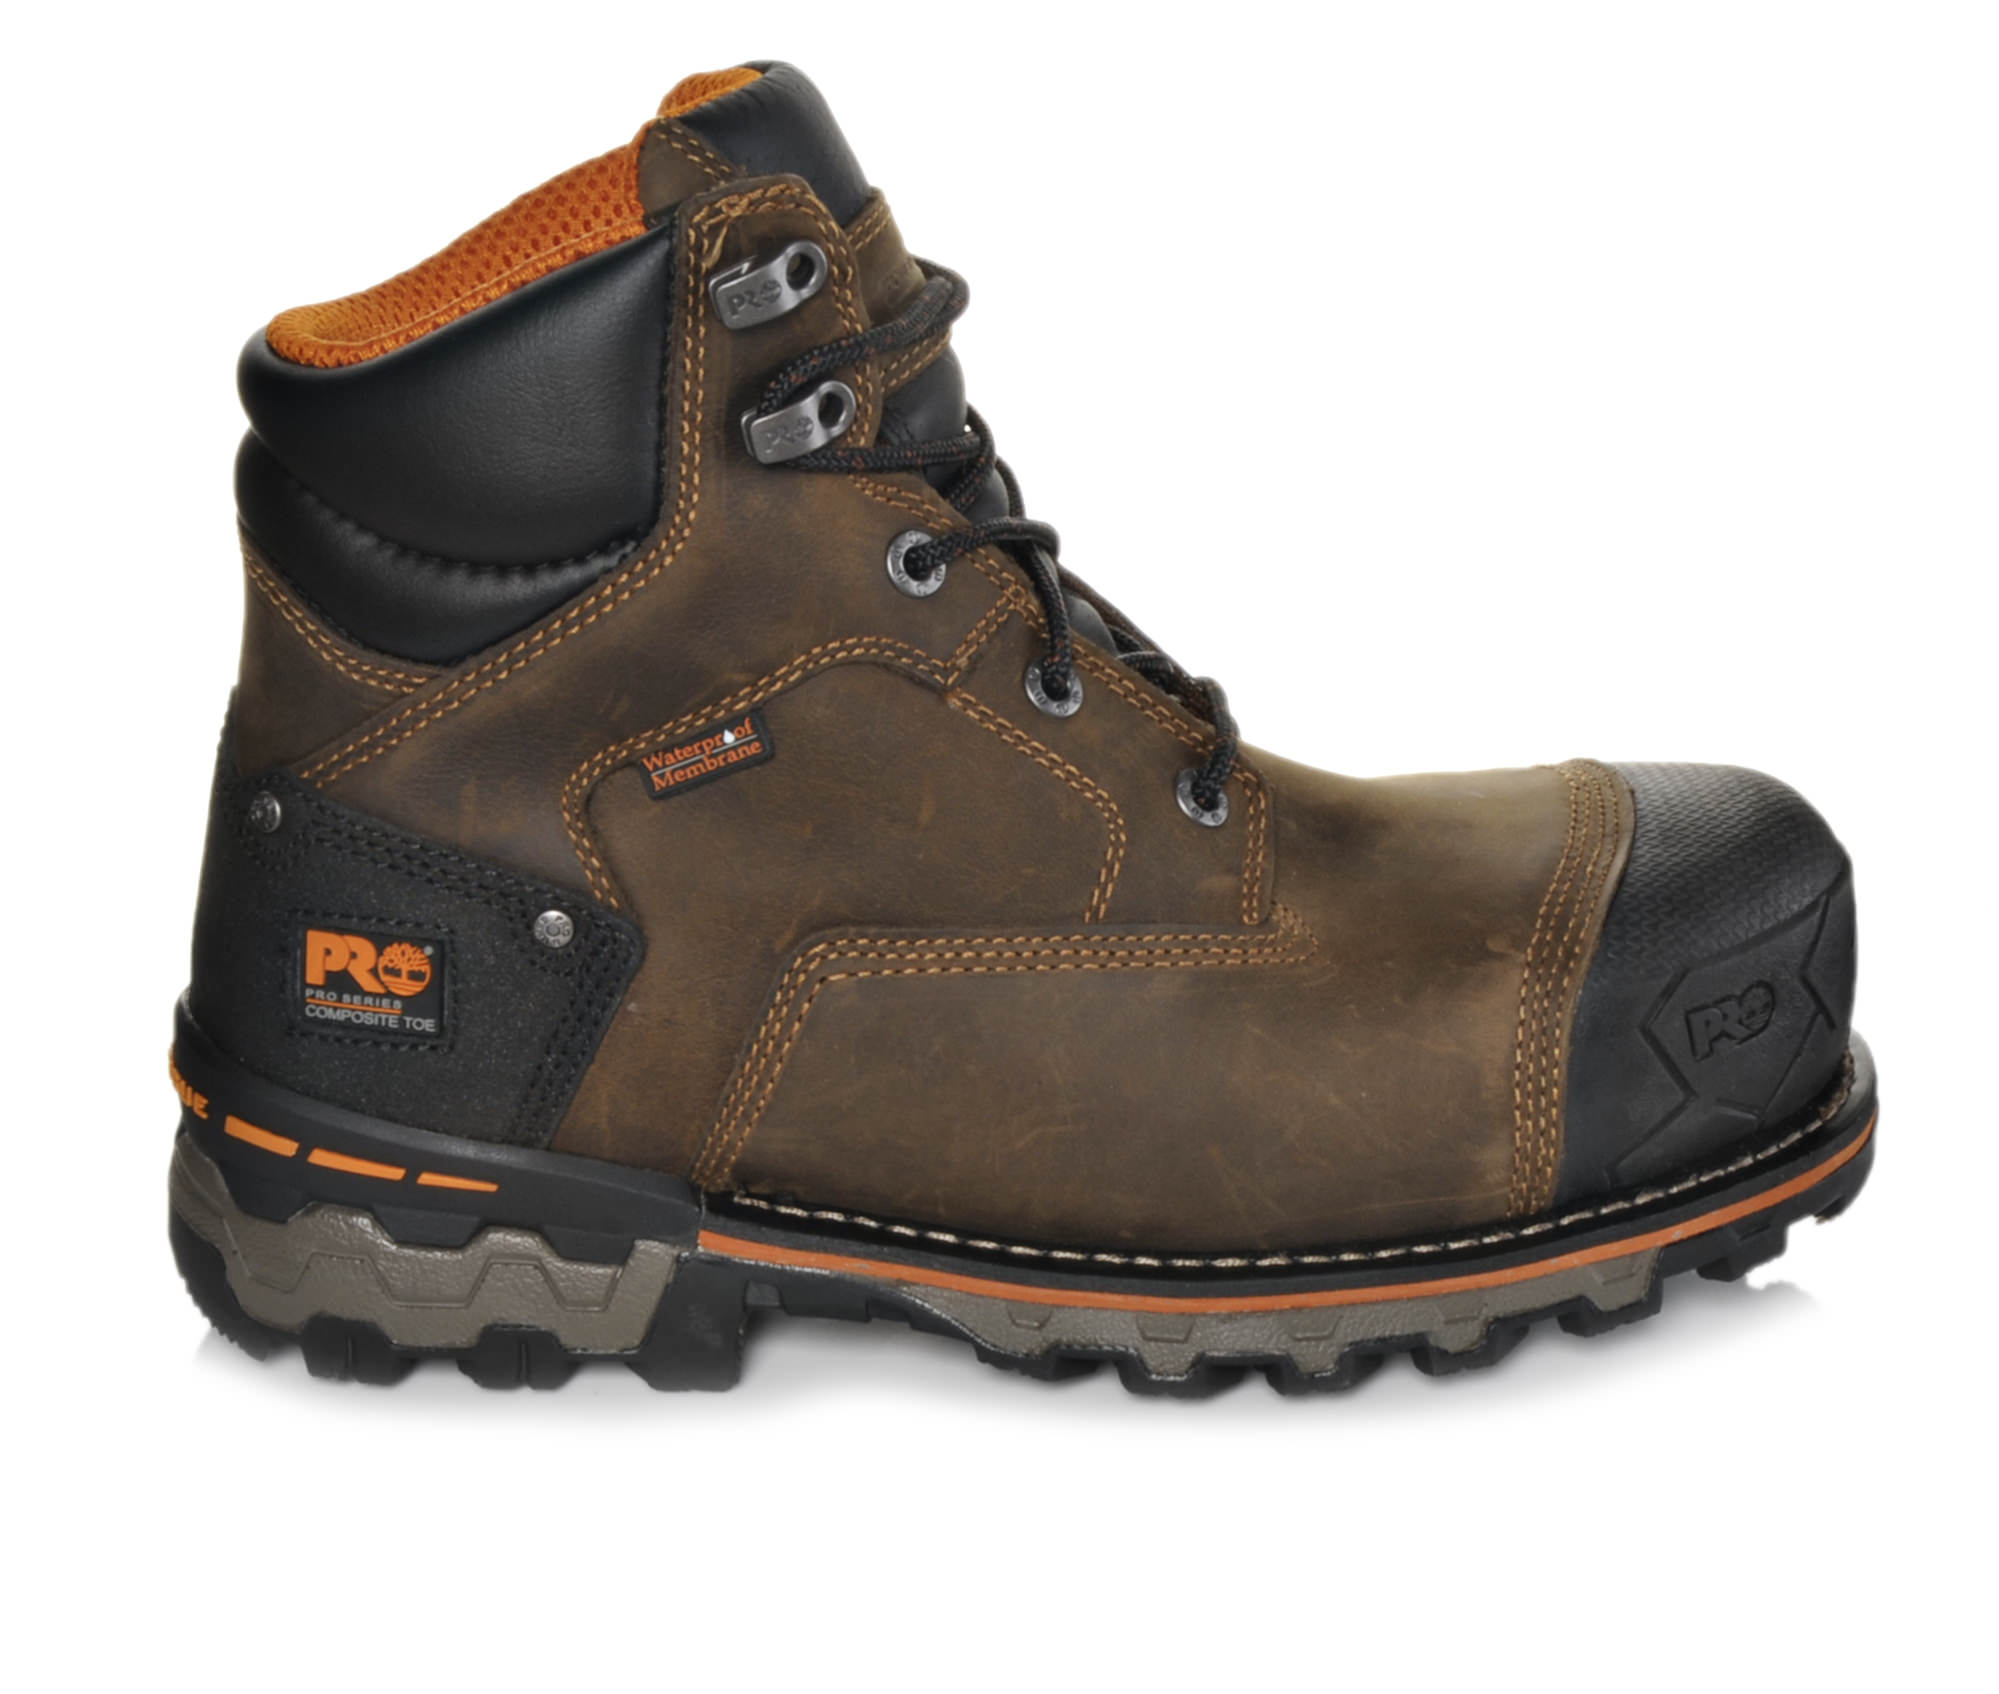 Timberland Pro 92615 Boondock Composite Toe Men's Boots (Brown Leather)